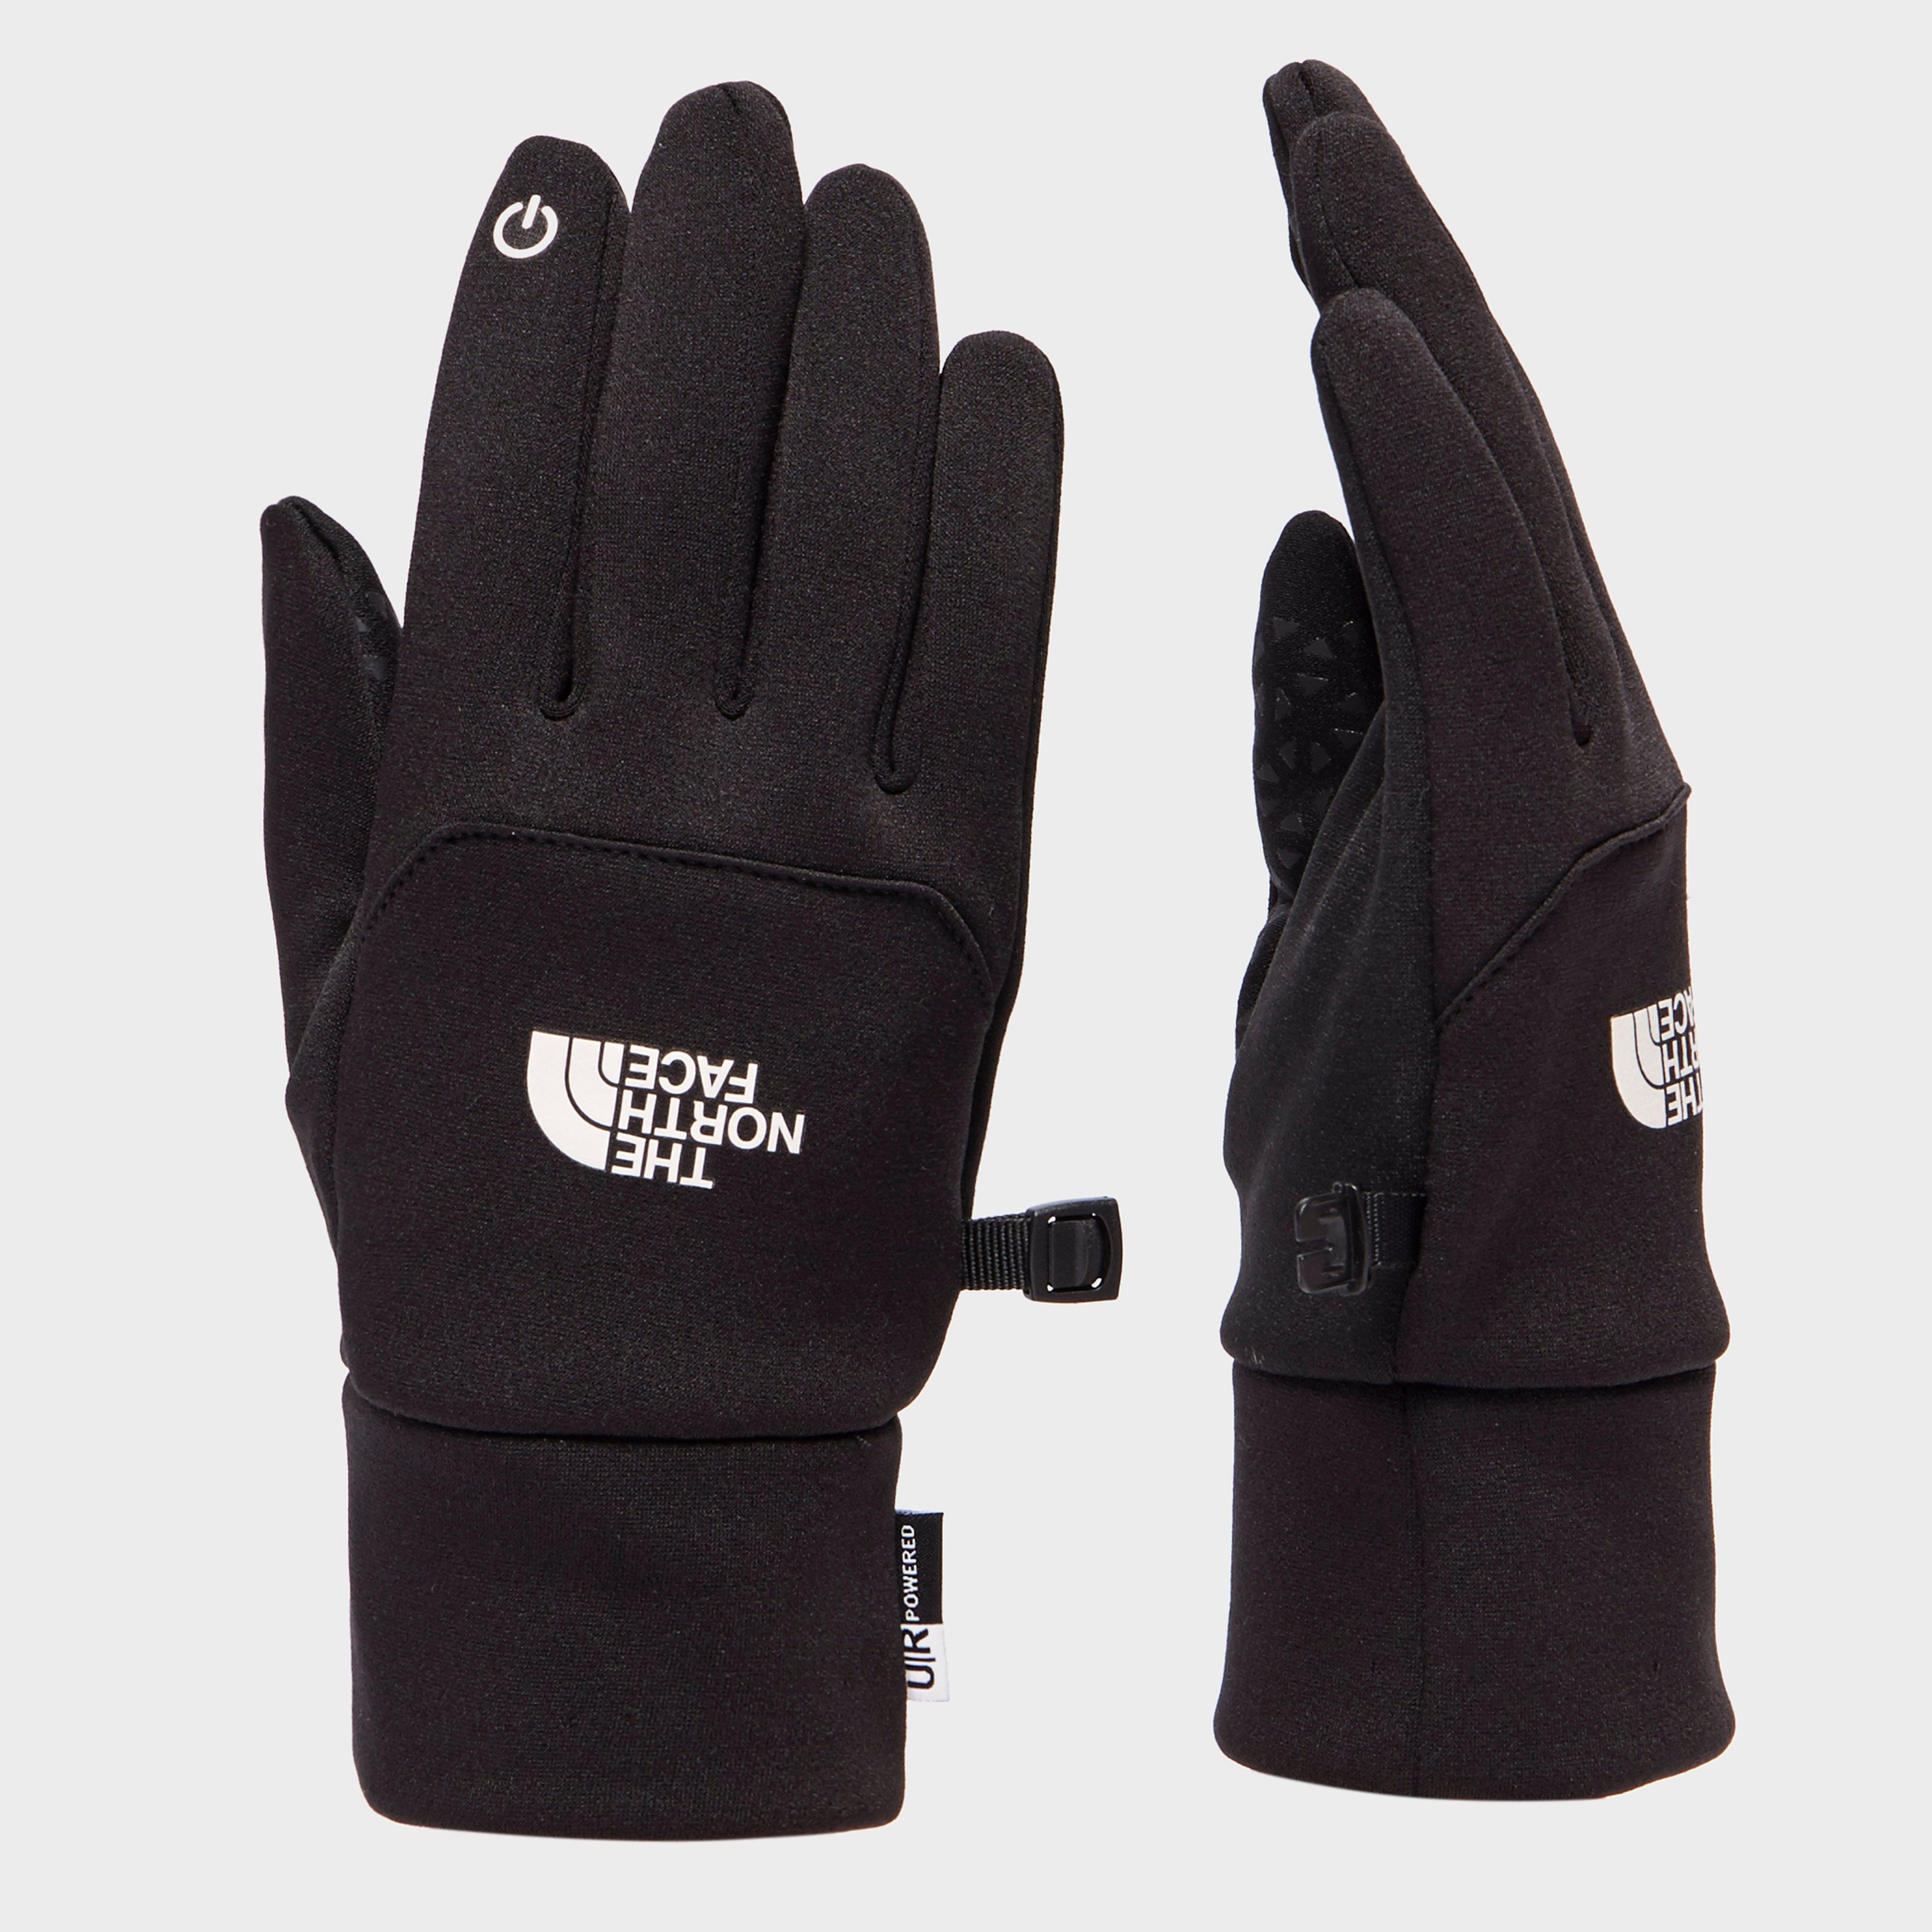 The north face gloves price comparison results